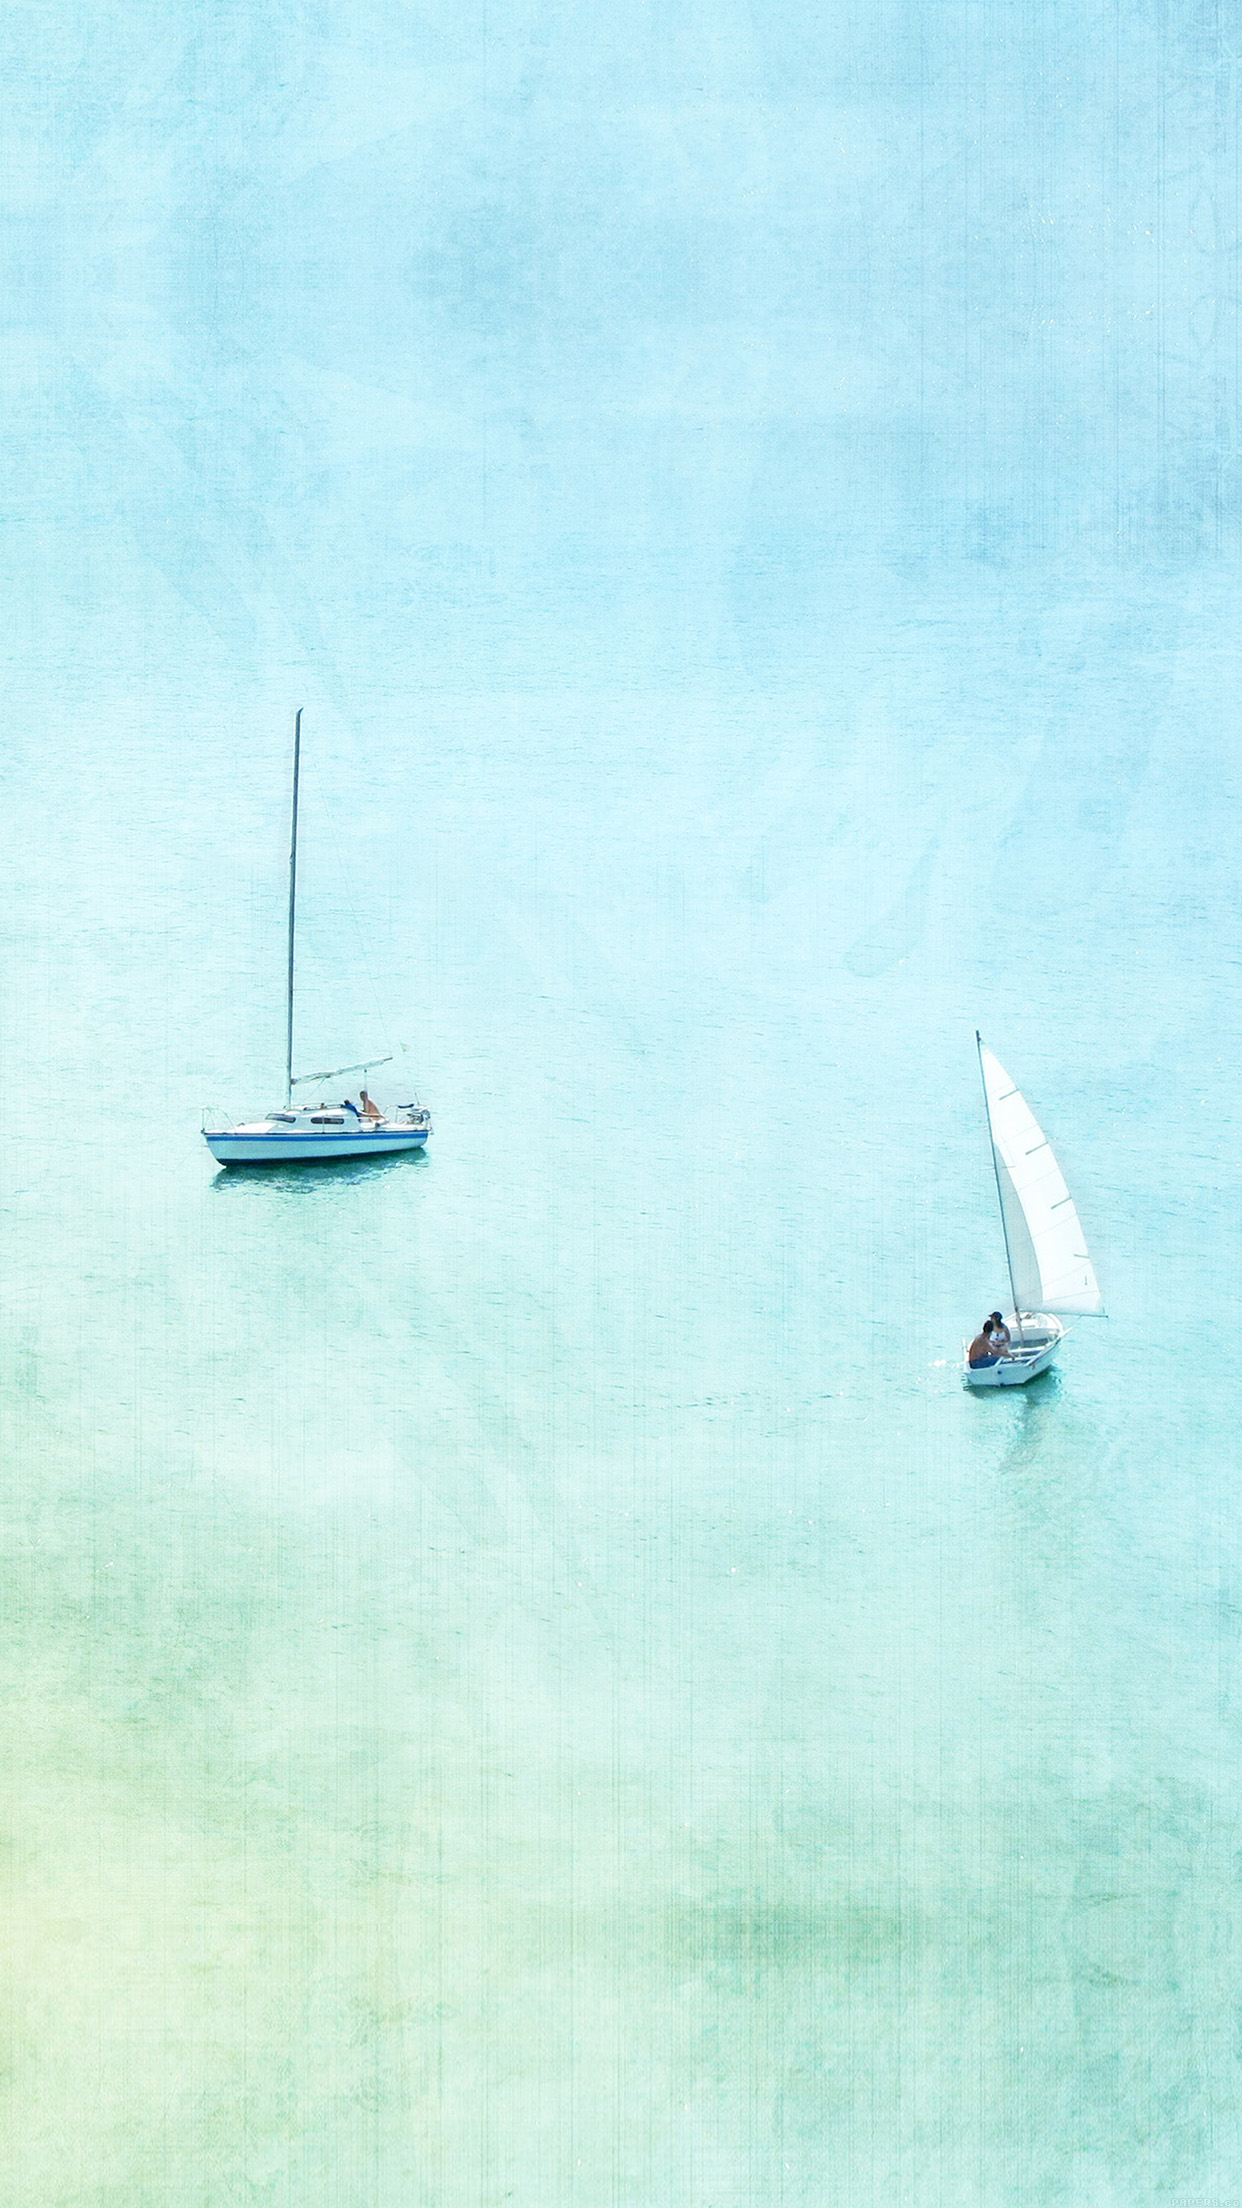 Boats Watercolor Painting iPhone 6 Plus HD Wallpaper iPod Wallpaper 1242x2208